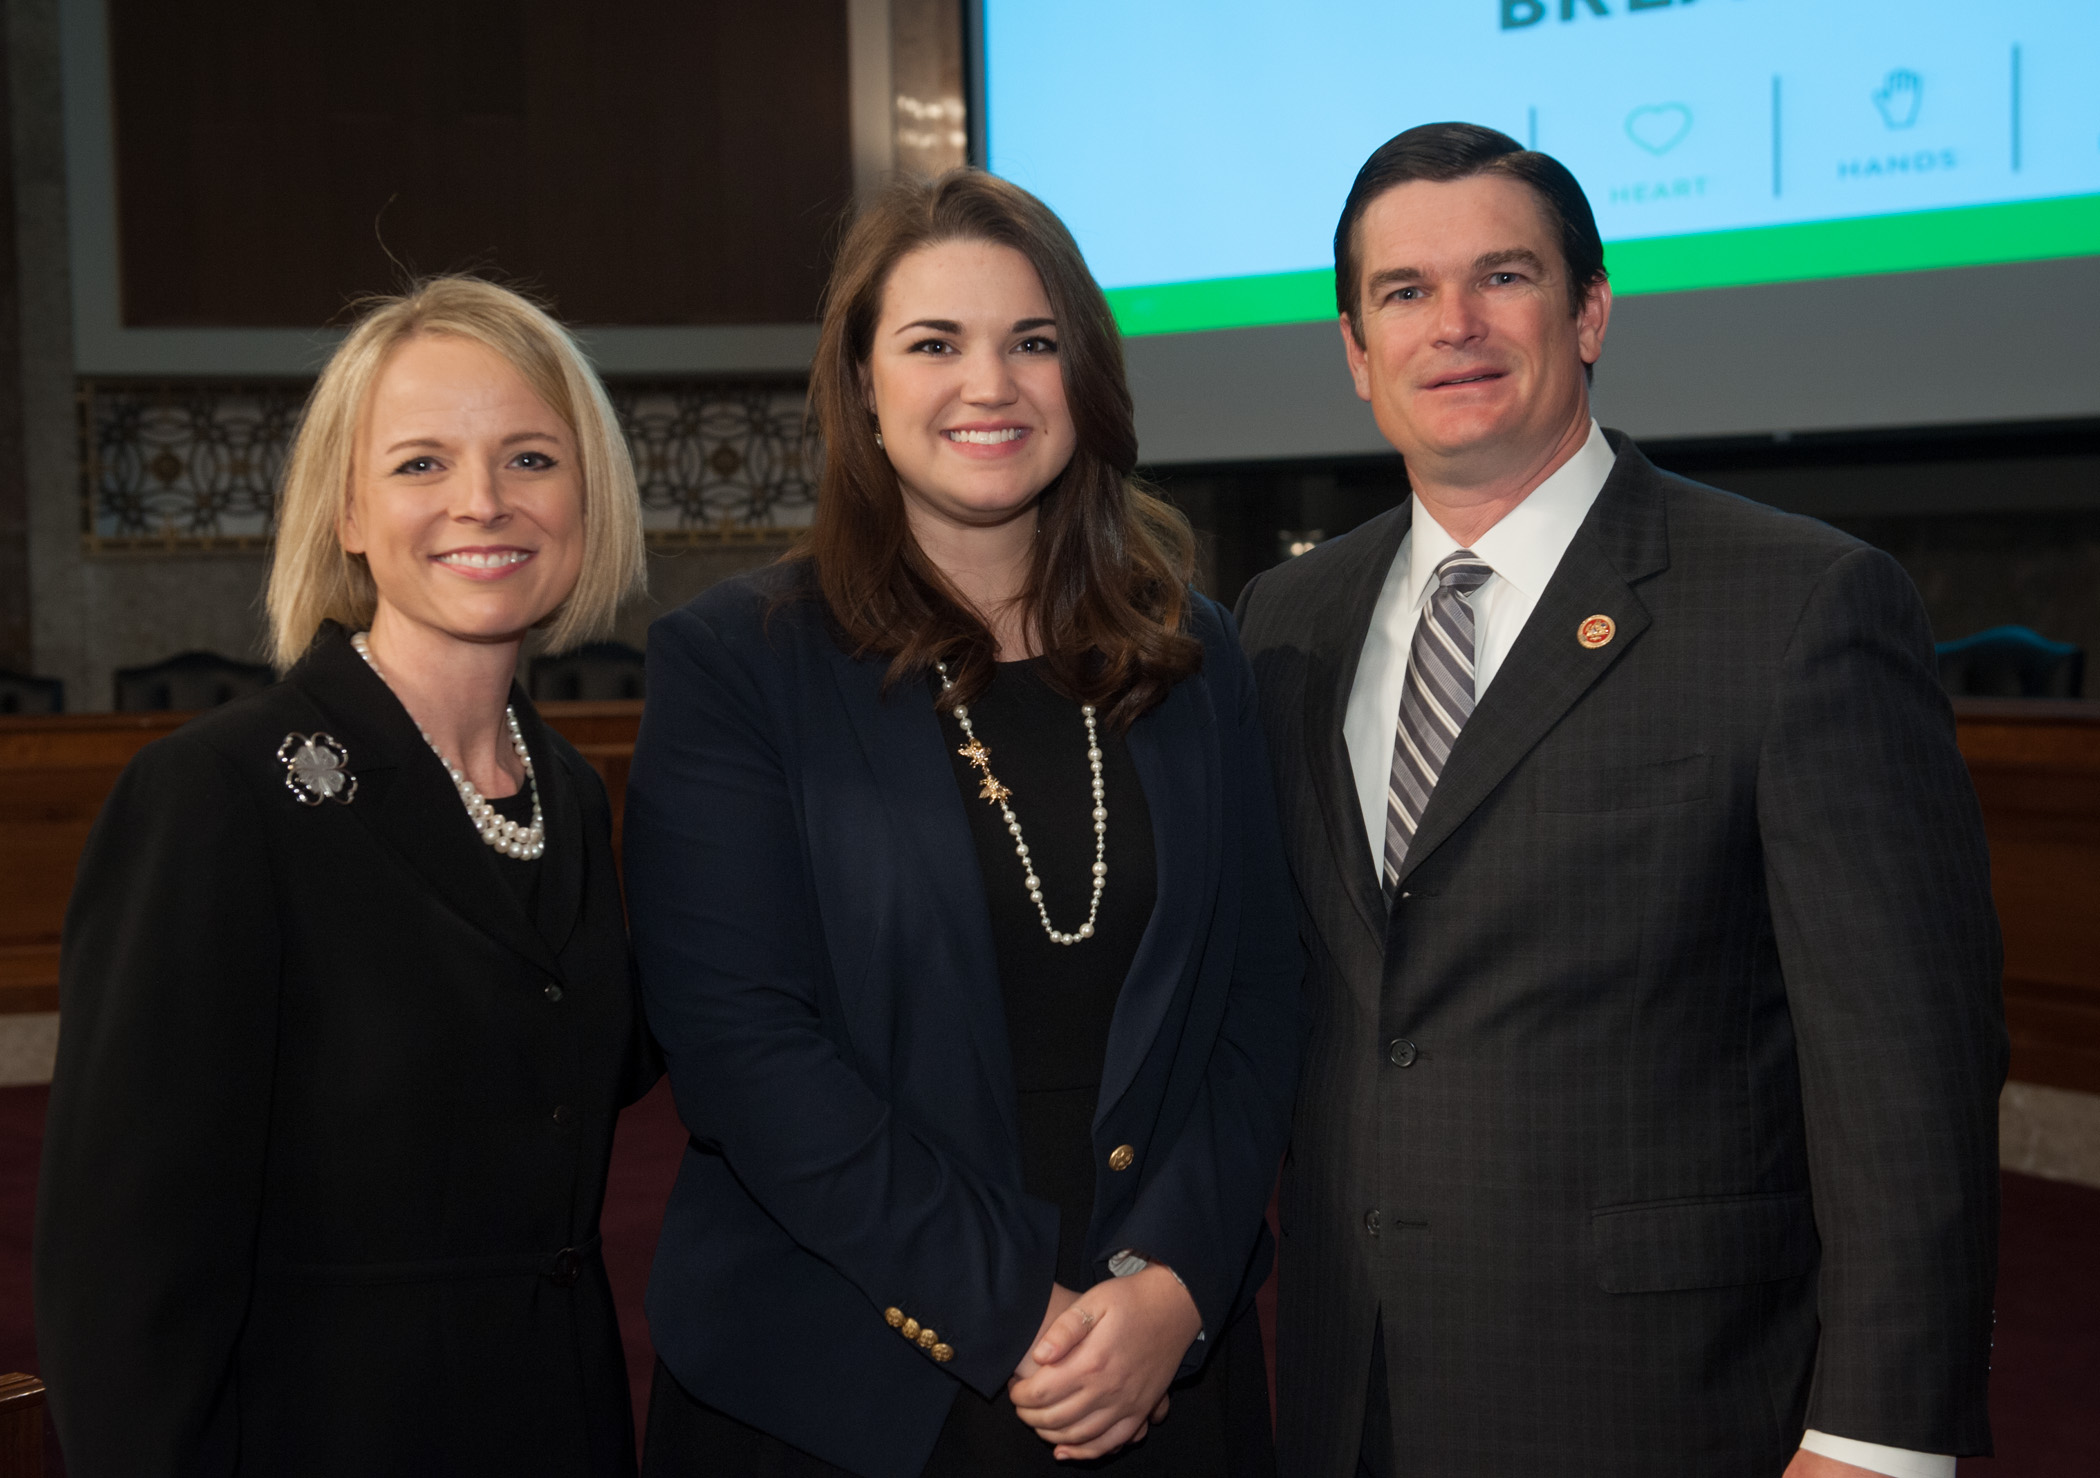 Jennifer Sirangelo, president and CEO, National 4-H Council, Tess Hammock, a National 4-H Council Youth Trustee, Georgia 4-h'er and agricultural communications student at UGA stand with Rep. Austin Scott, of Warner Robins, Ga., at the National 4-H Council's Congressional Breakfast on April 9.